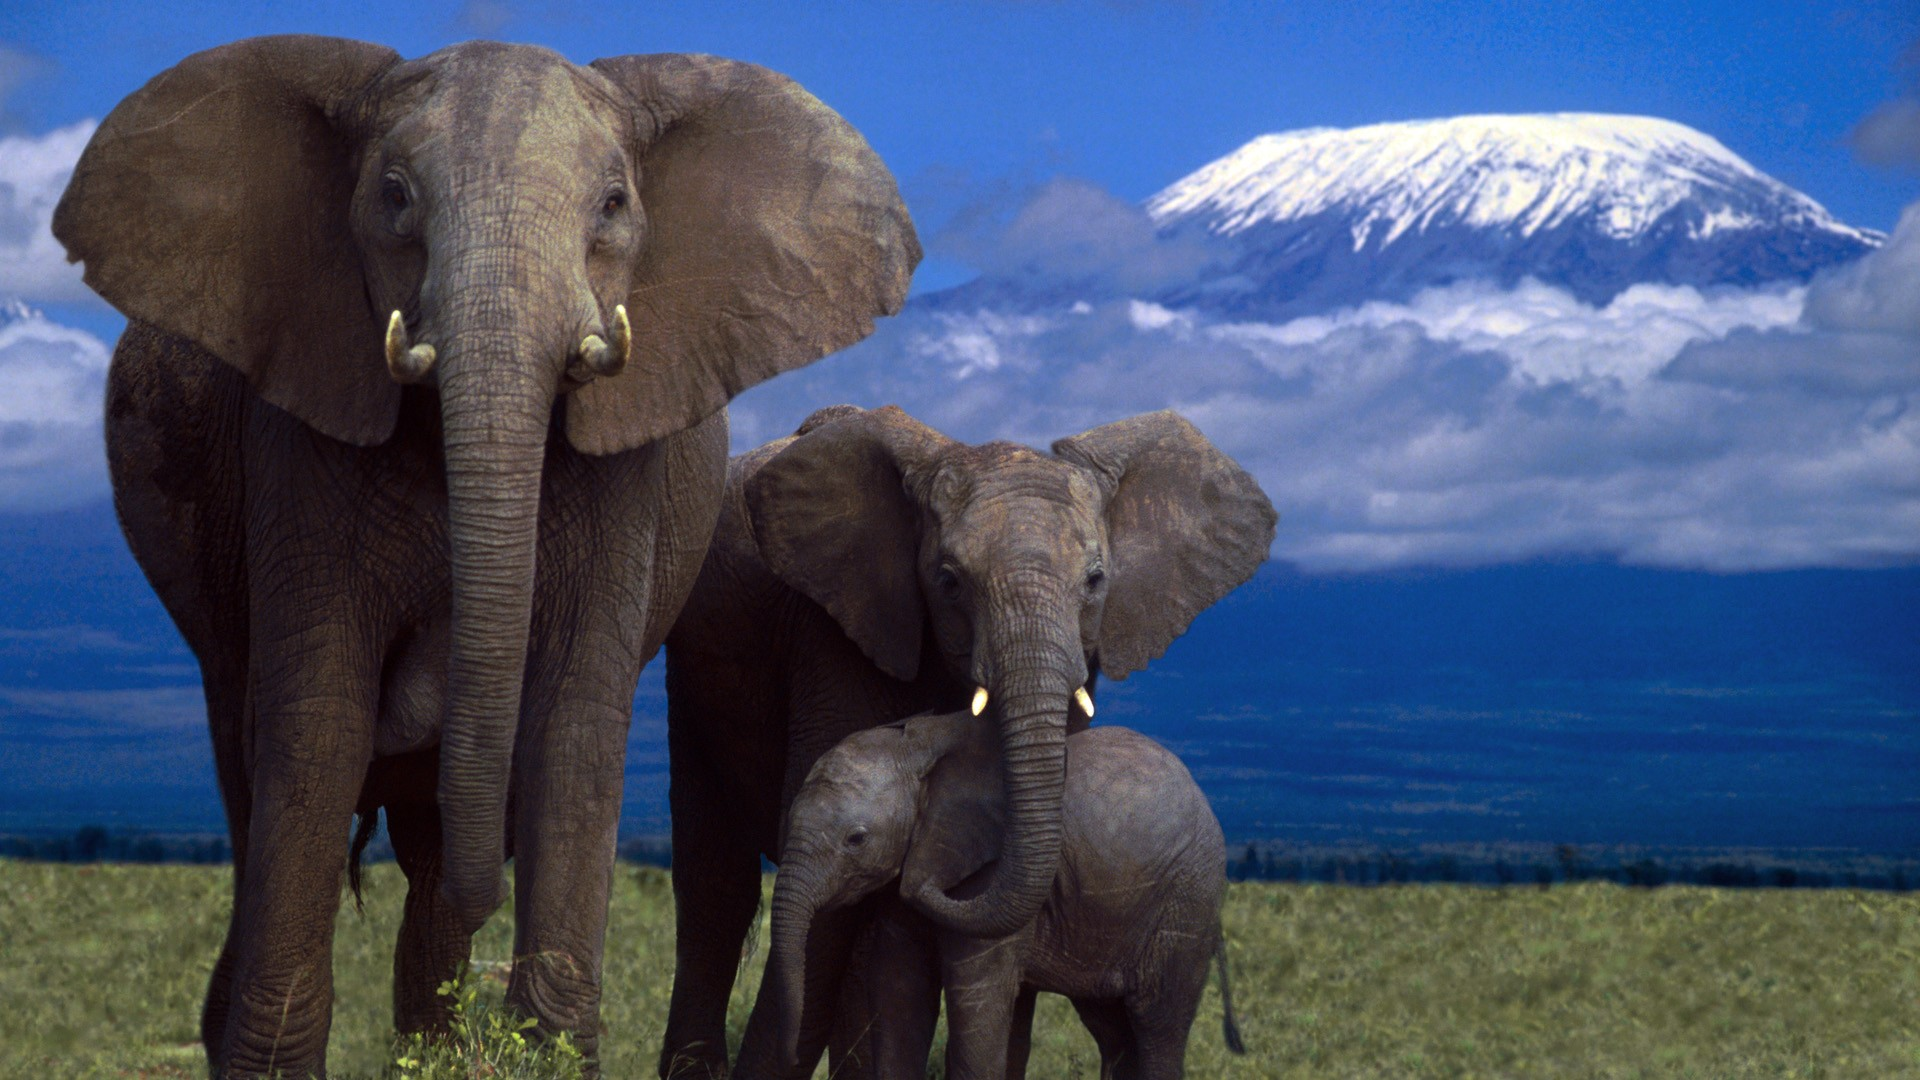 Elephants Wallpapers High Quality